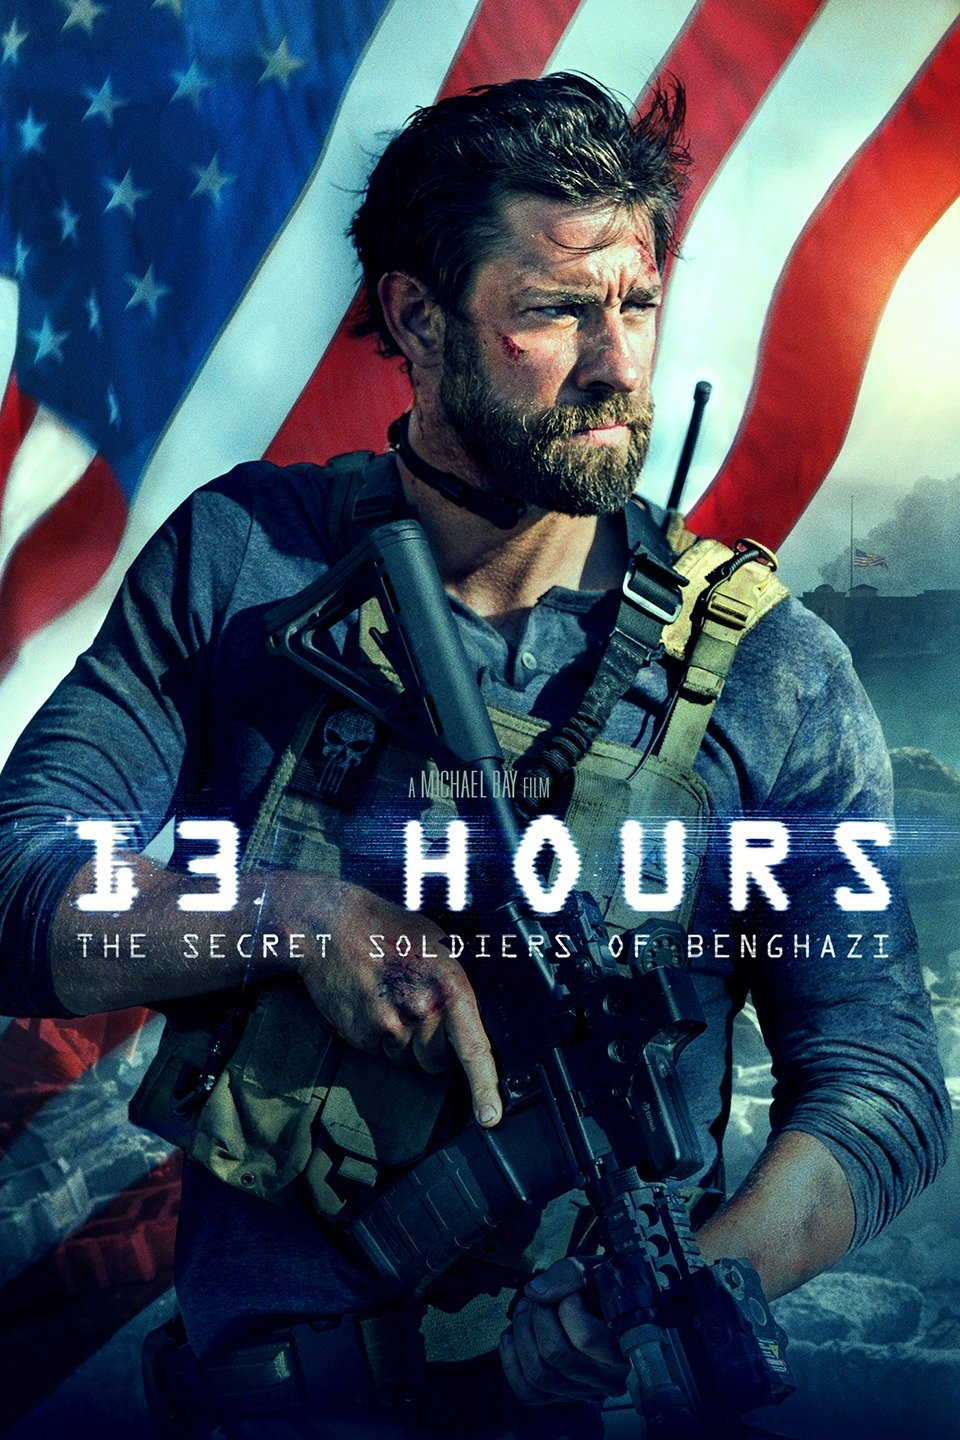 13 Hours 2016 Google Drive Link Full Movie Download BluRay 480p 500MB And 720p 1.2GB